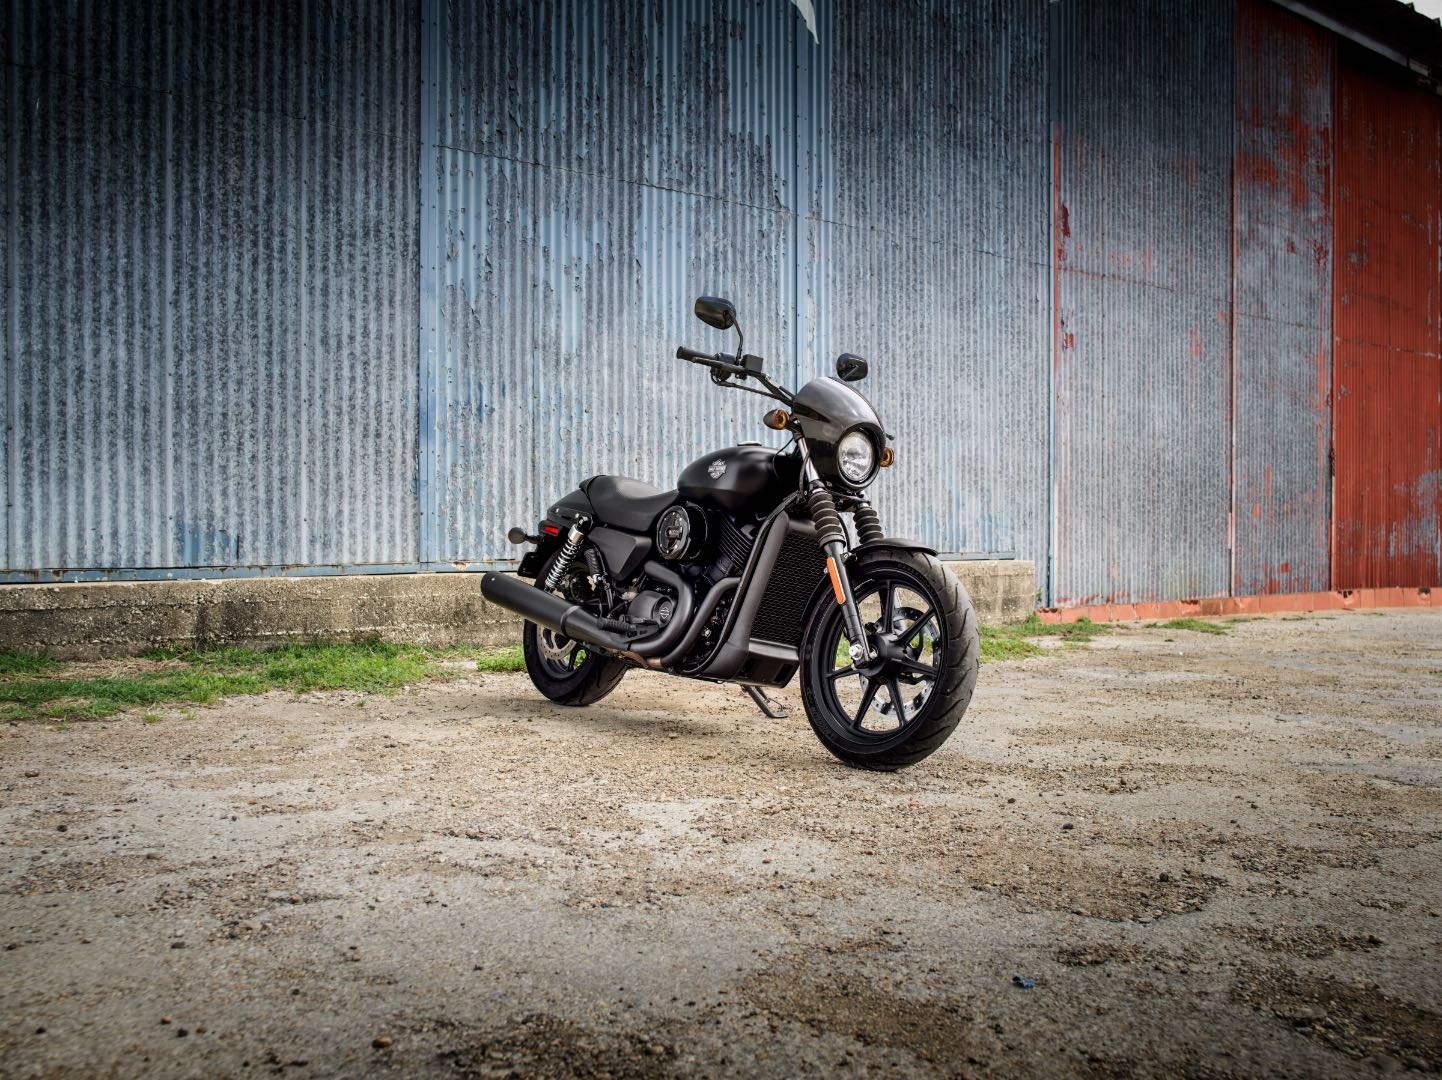 2017 Harley-Davidson Street 500 Buyer's Guide | Specs & Price